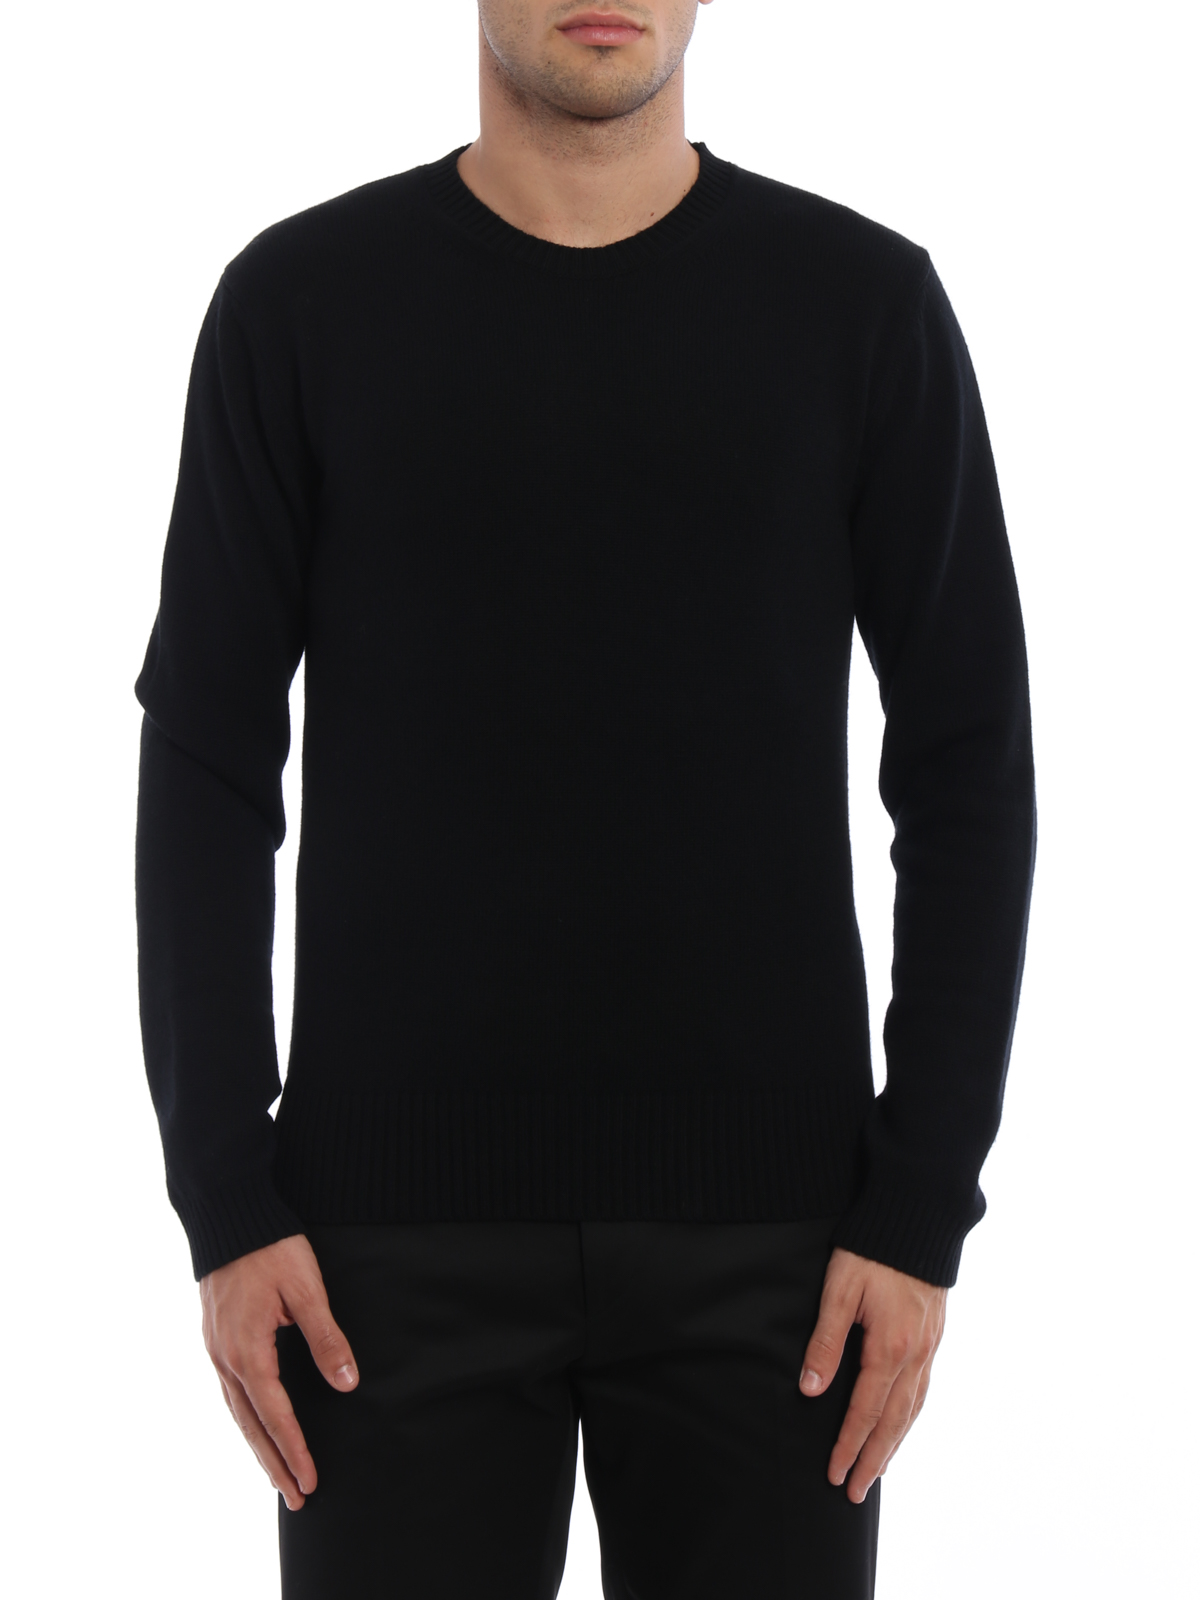 Cashmere crew neck sweater by Valentino